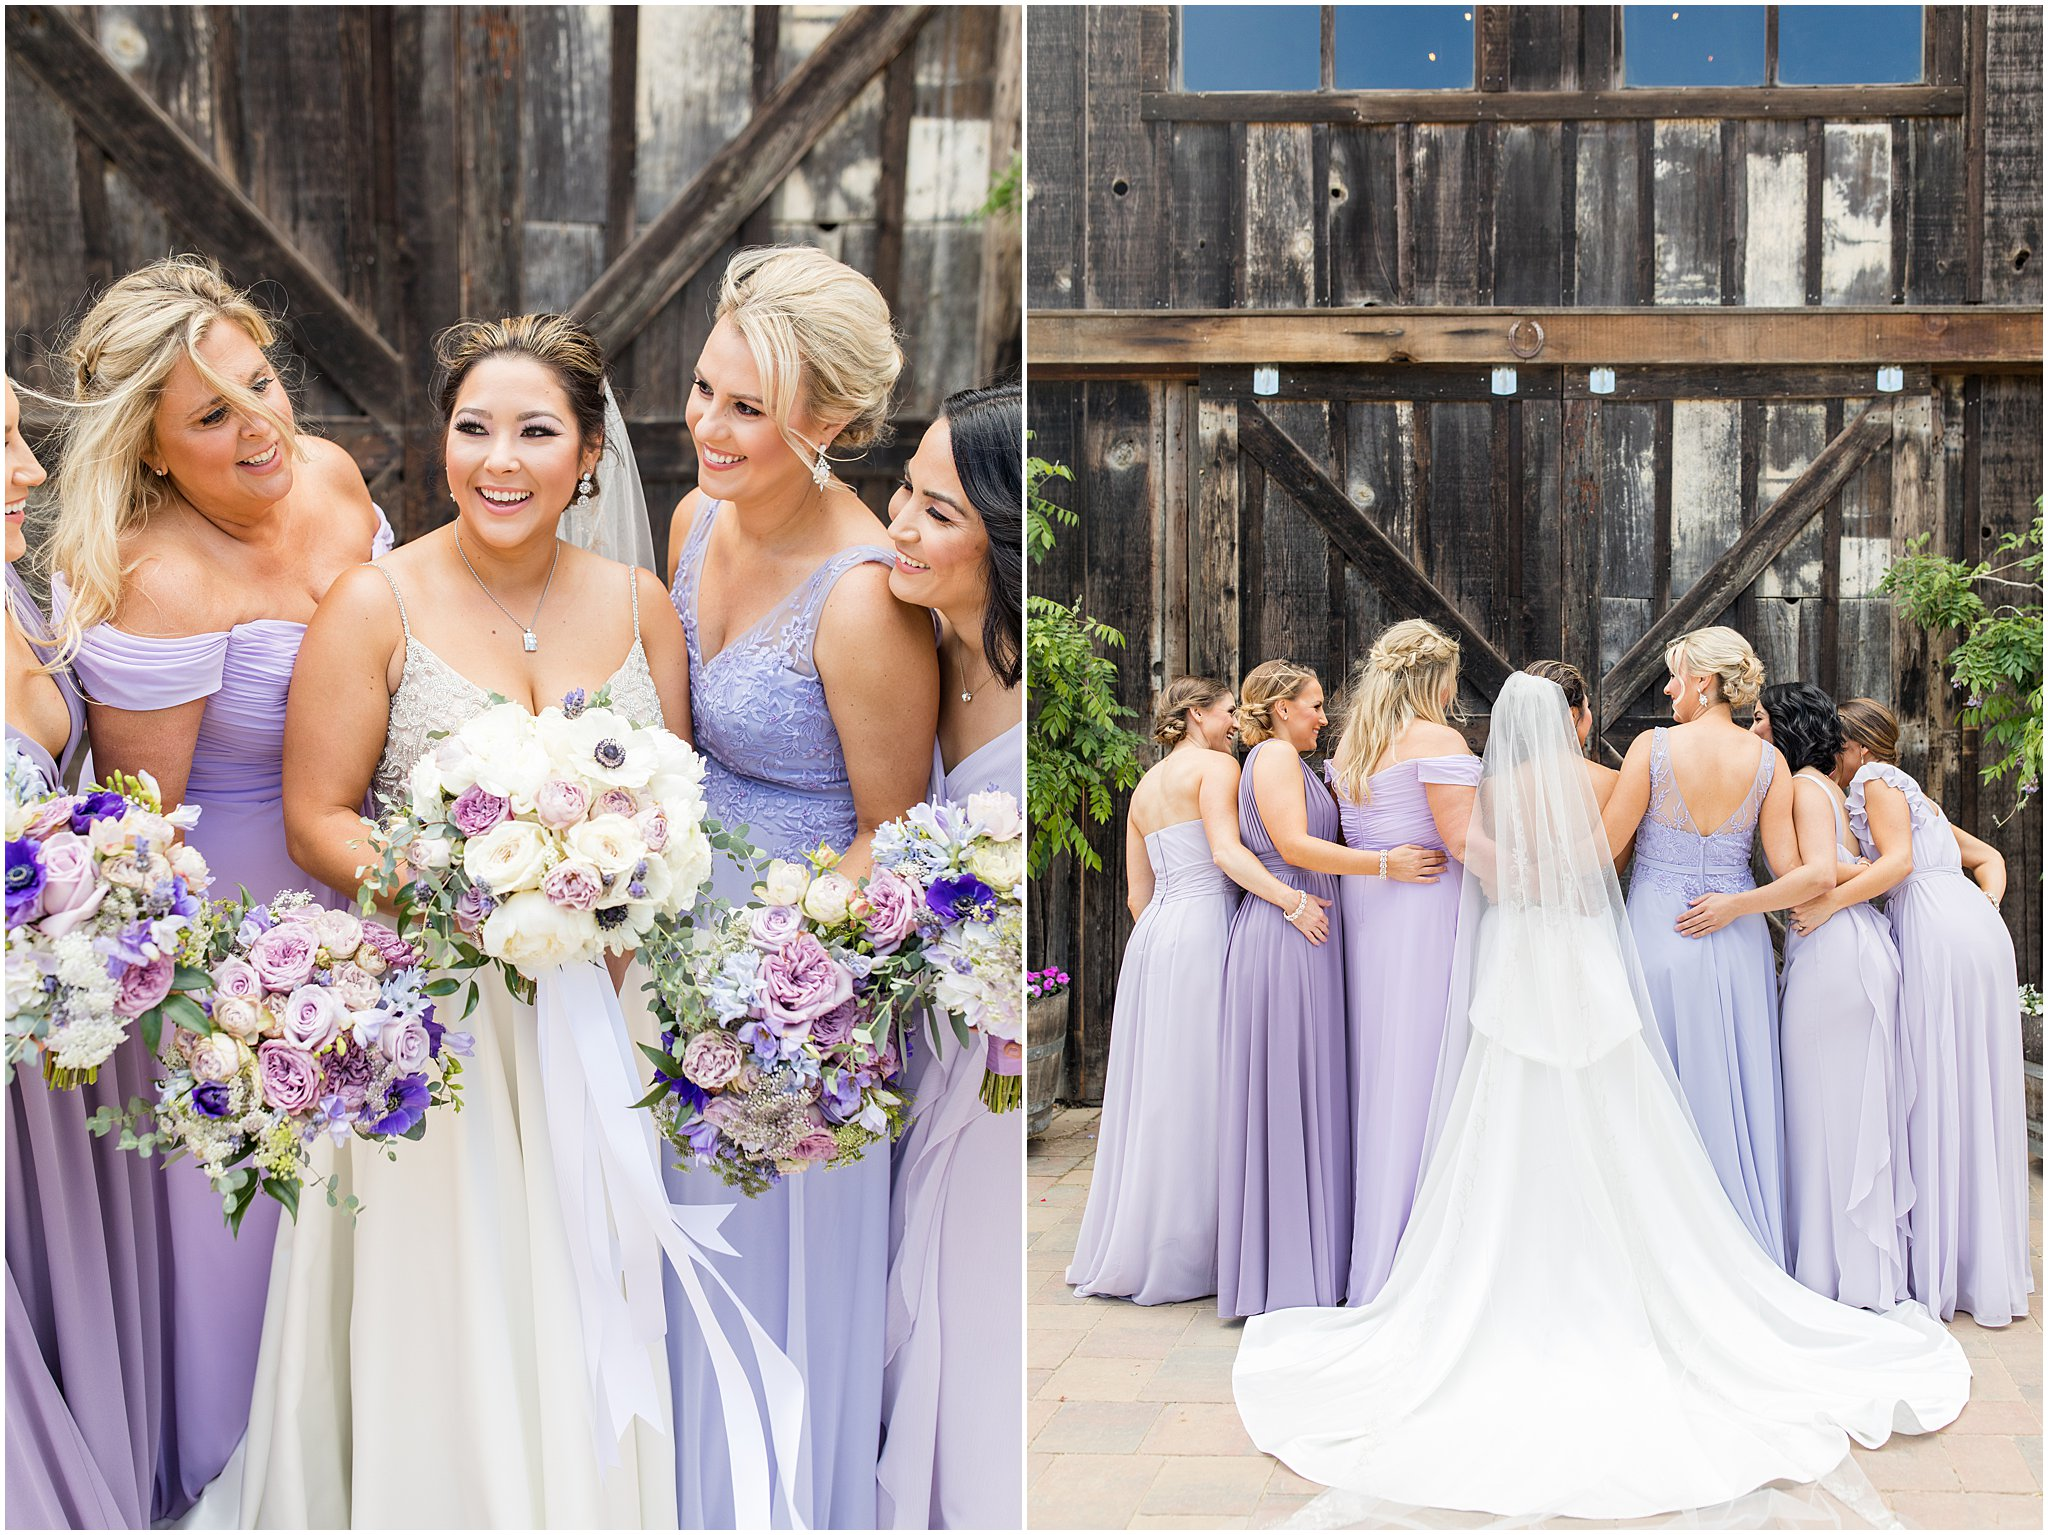 2019 wedding san juan bautista hacienda de leal vineyards bay area wedding photographer_0025.jpg